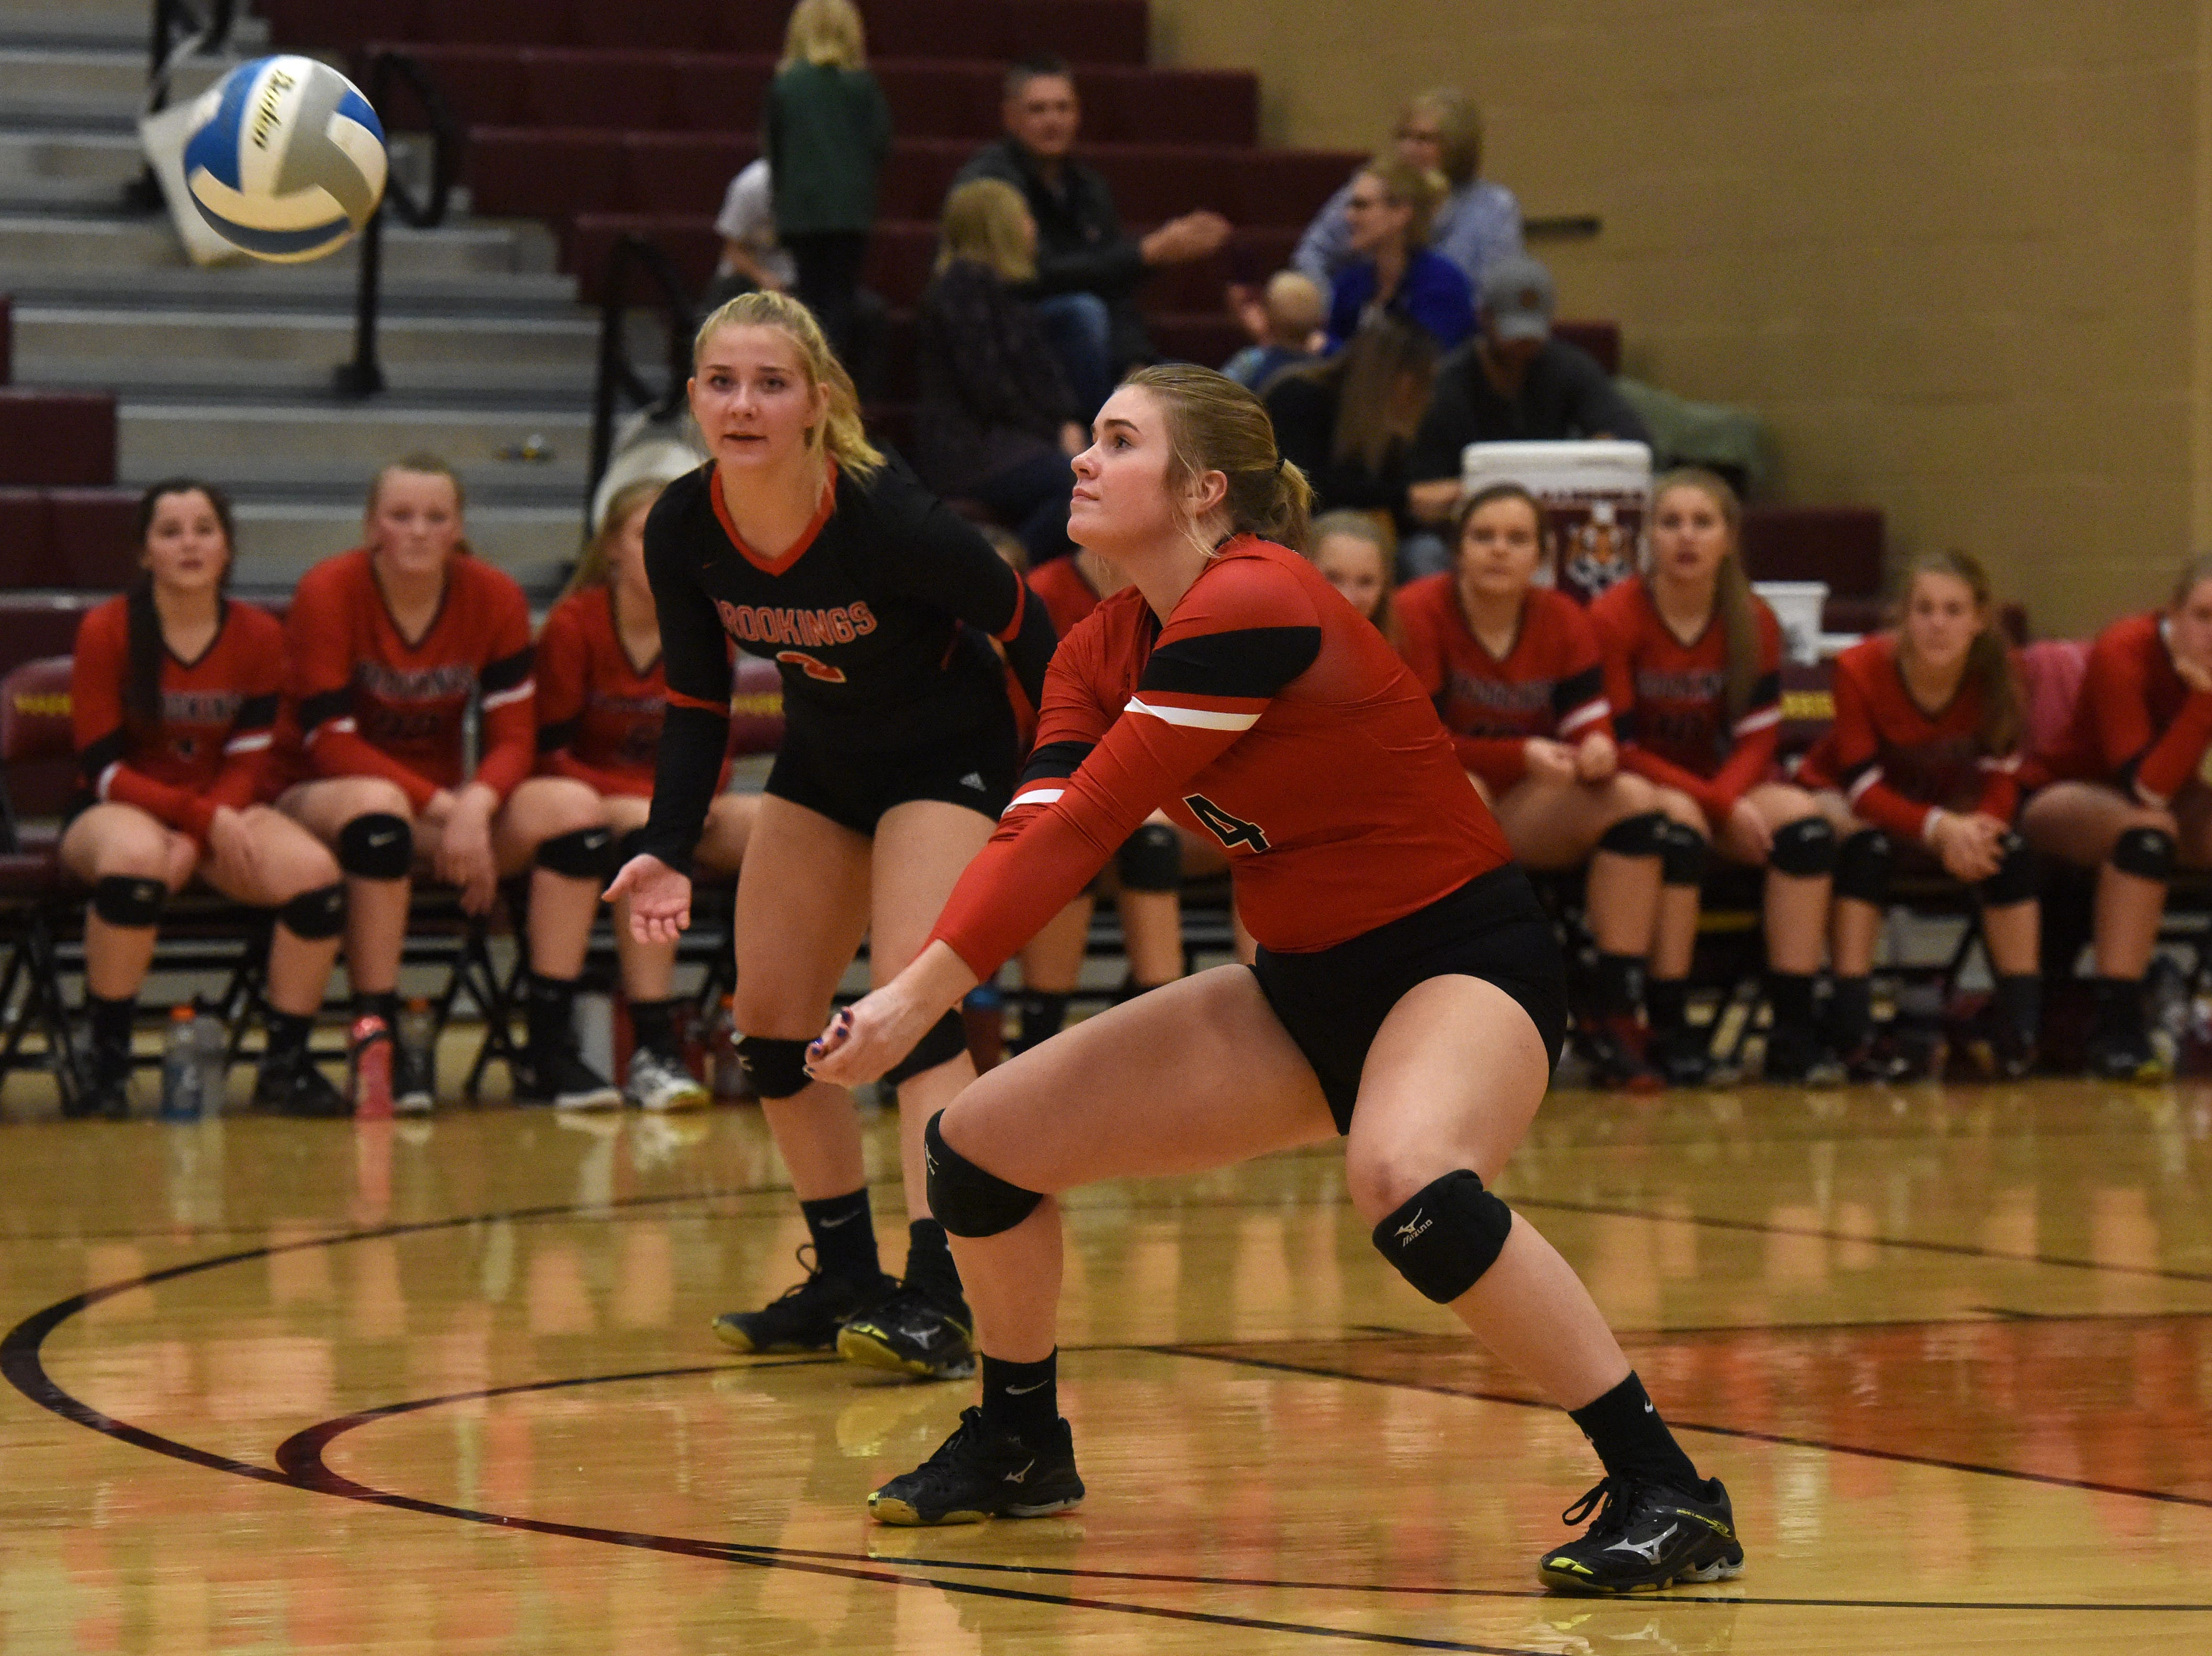 Brookings' All' Gordon (4) bumps the ball during a match against Harrisburg Tuesday, Oct. 30, 2018 in Harrisburg, S.D.